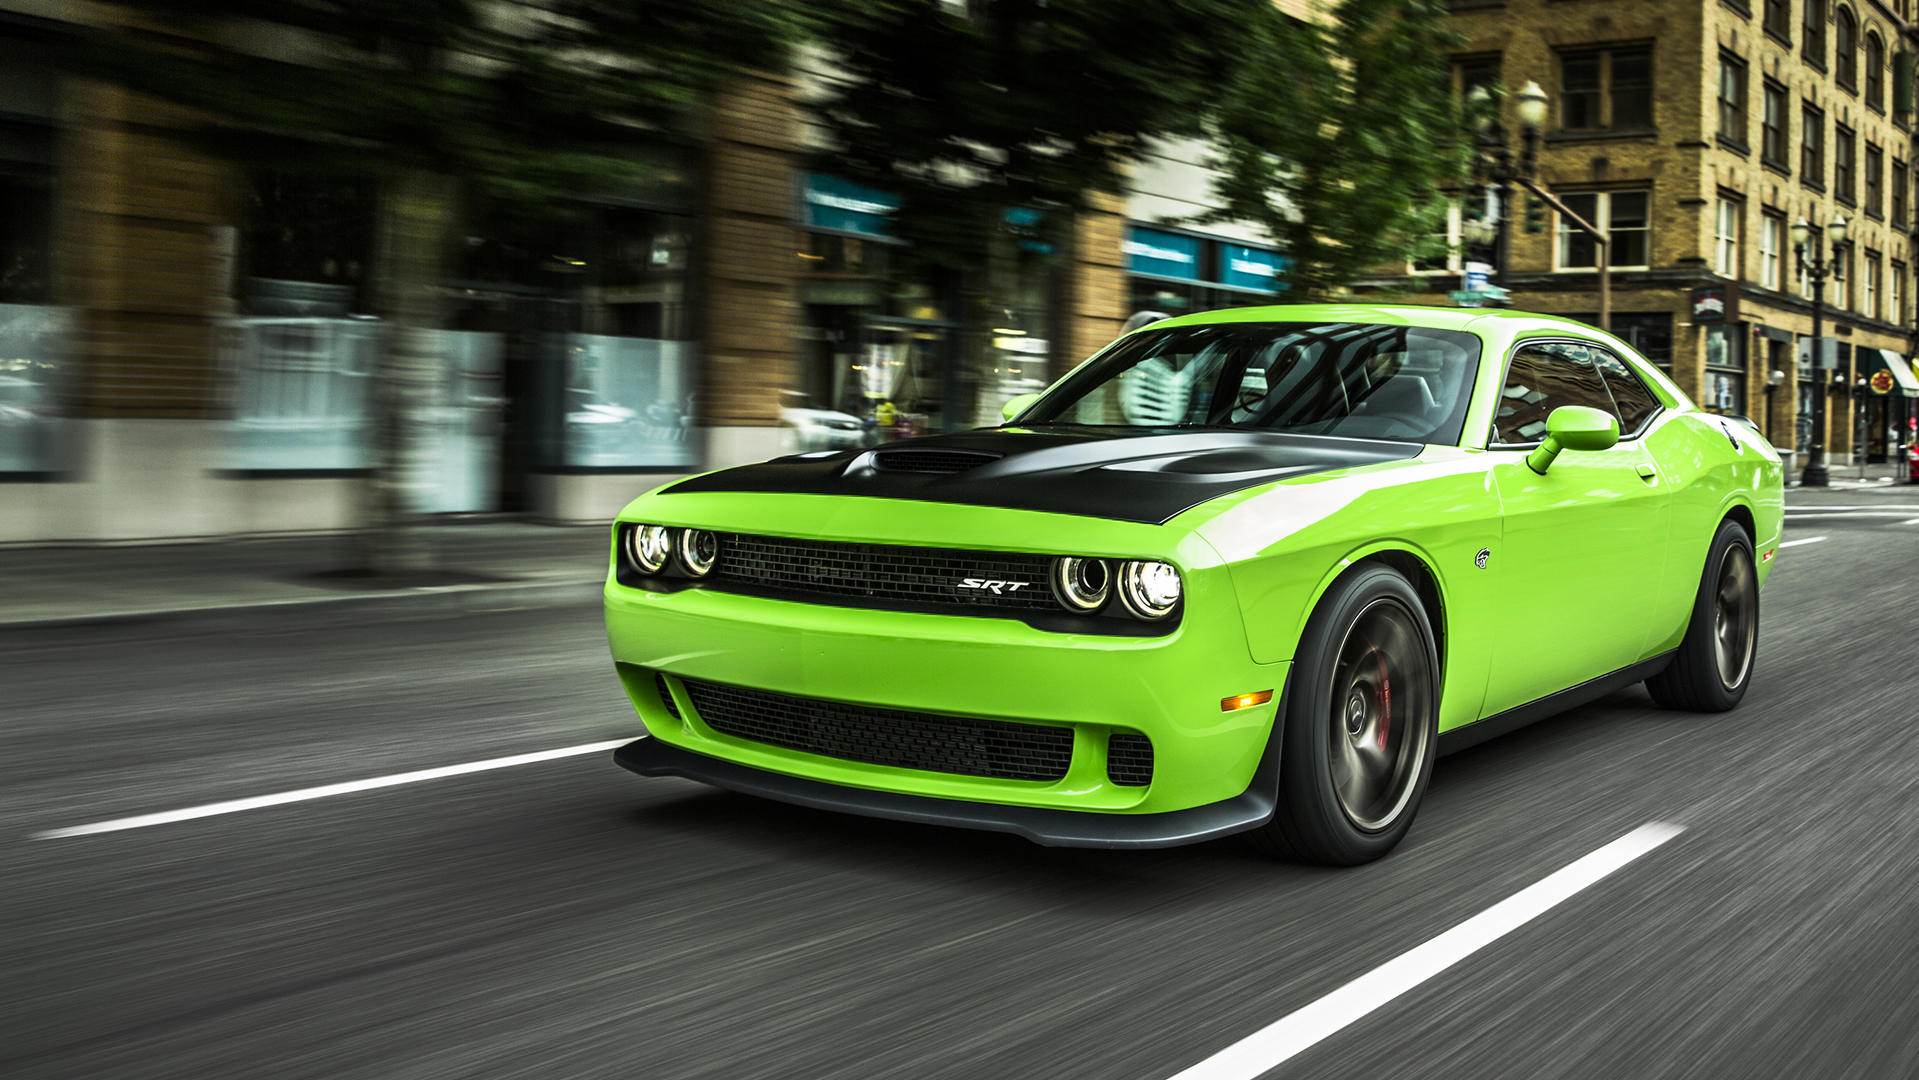 dodge challenger srt hellcat news and reviews. Black Bedroom Furniture Sets. Home Design Ideas